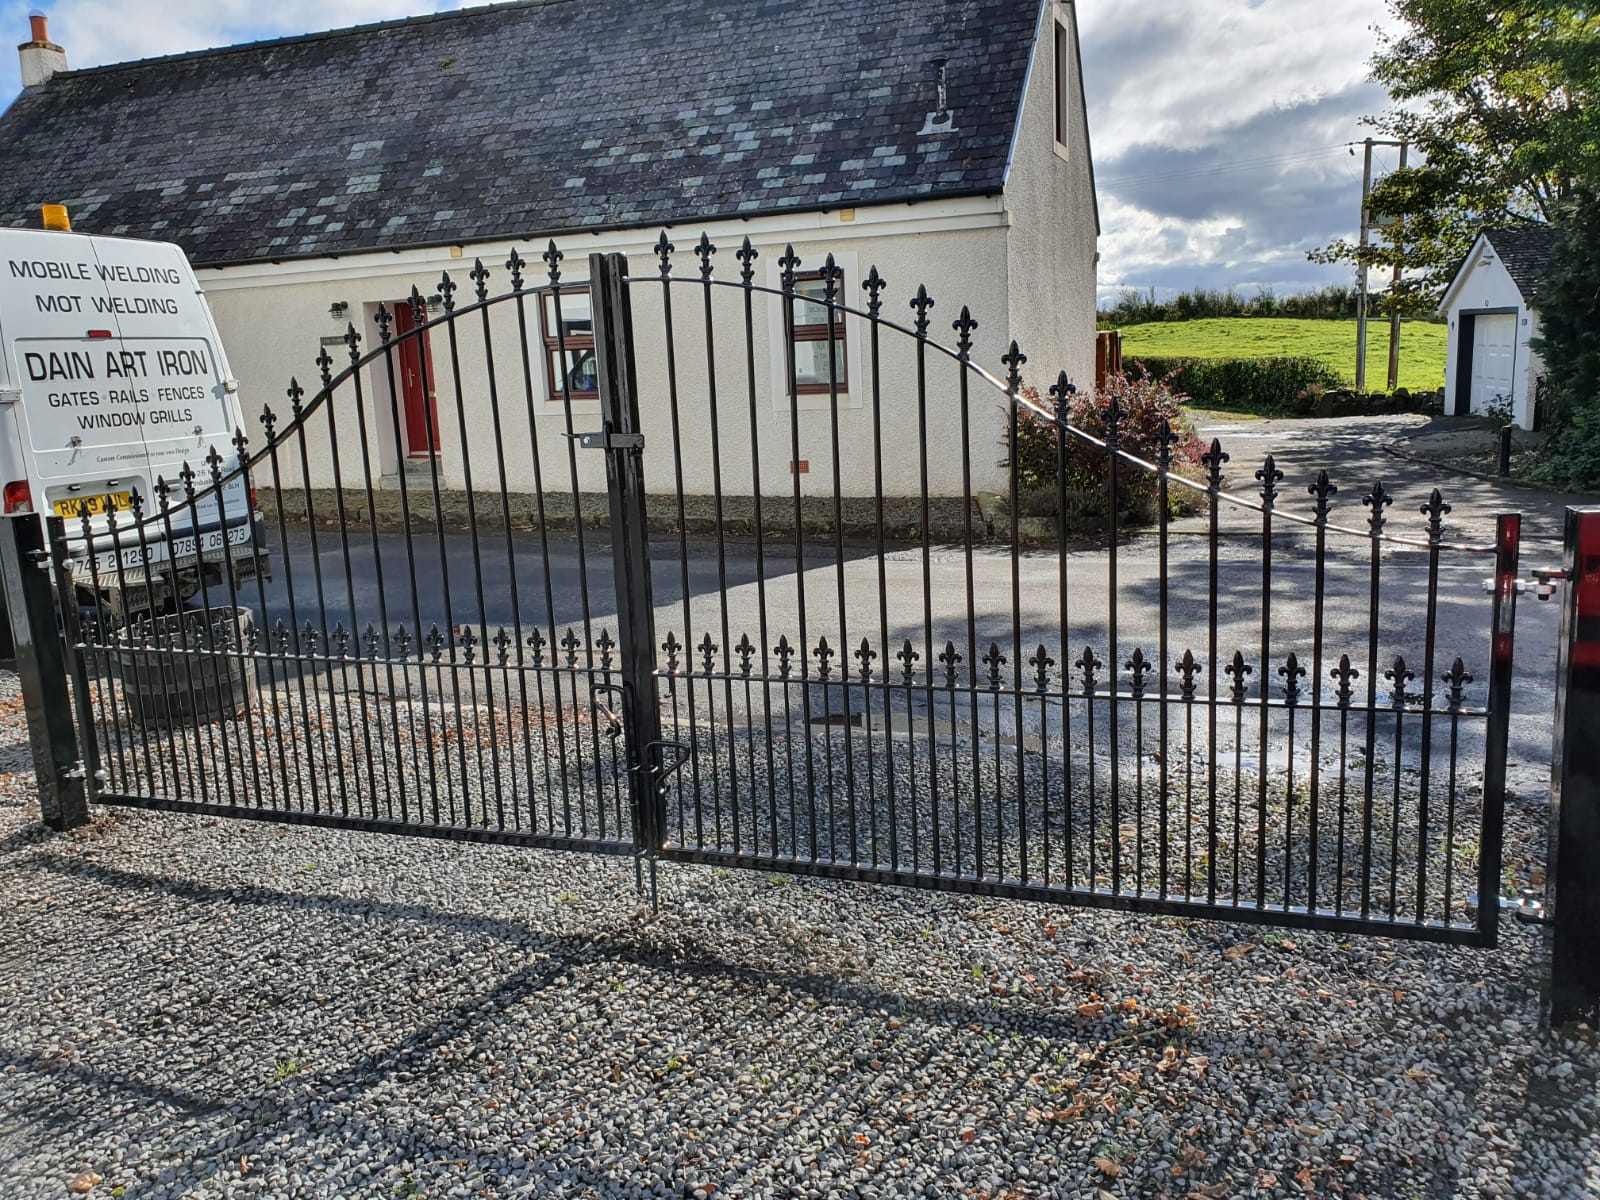 Bow arched driveway gates with railheads